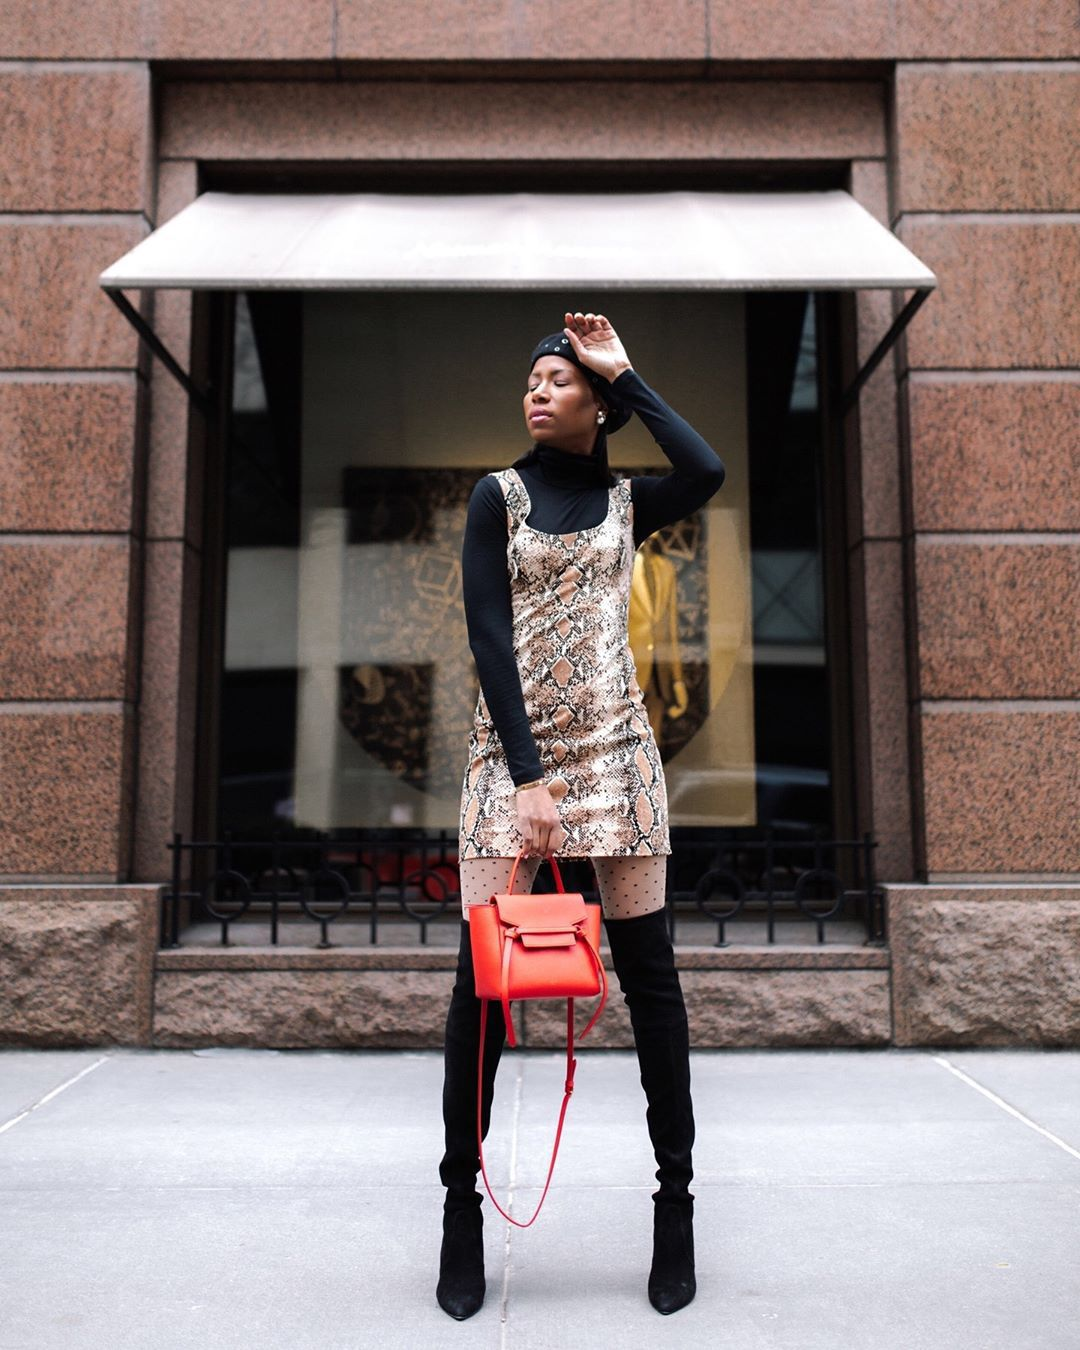 dress mini skirt snake print black boots knee high boots tights black turtleneck top bag beret